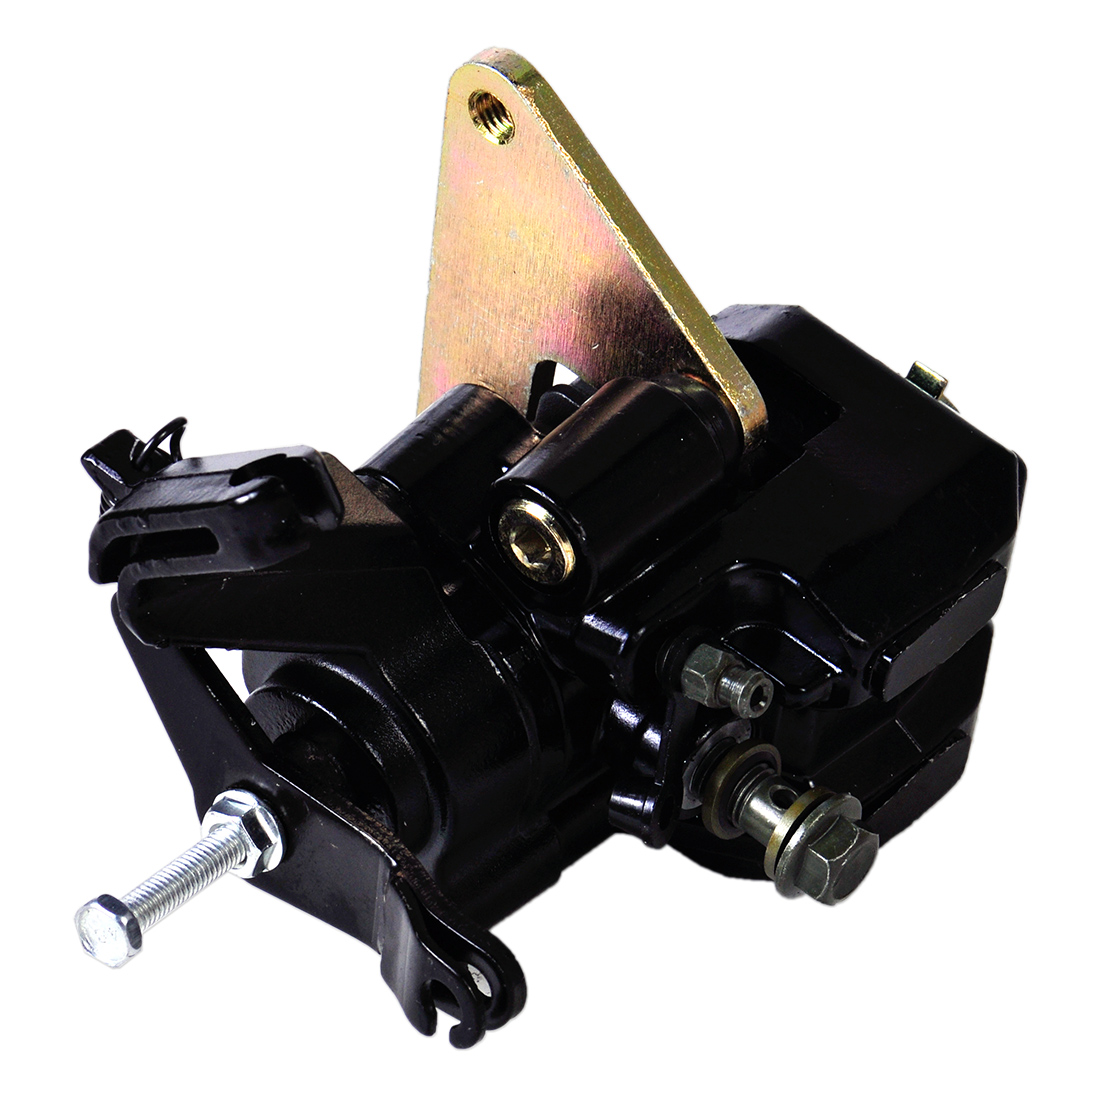 beler Motorcycle Metal Rear Back Brake Caliper Fit for Suzuki Quad Sport Z400 2003 2004 2005 2006 2007 2008 2009 2012 2013 2014 aftermarket free shipping motorcycle parts eliminator tidy tail for 2006 2007 2008 fz6 fazer 2007 2008b lack